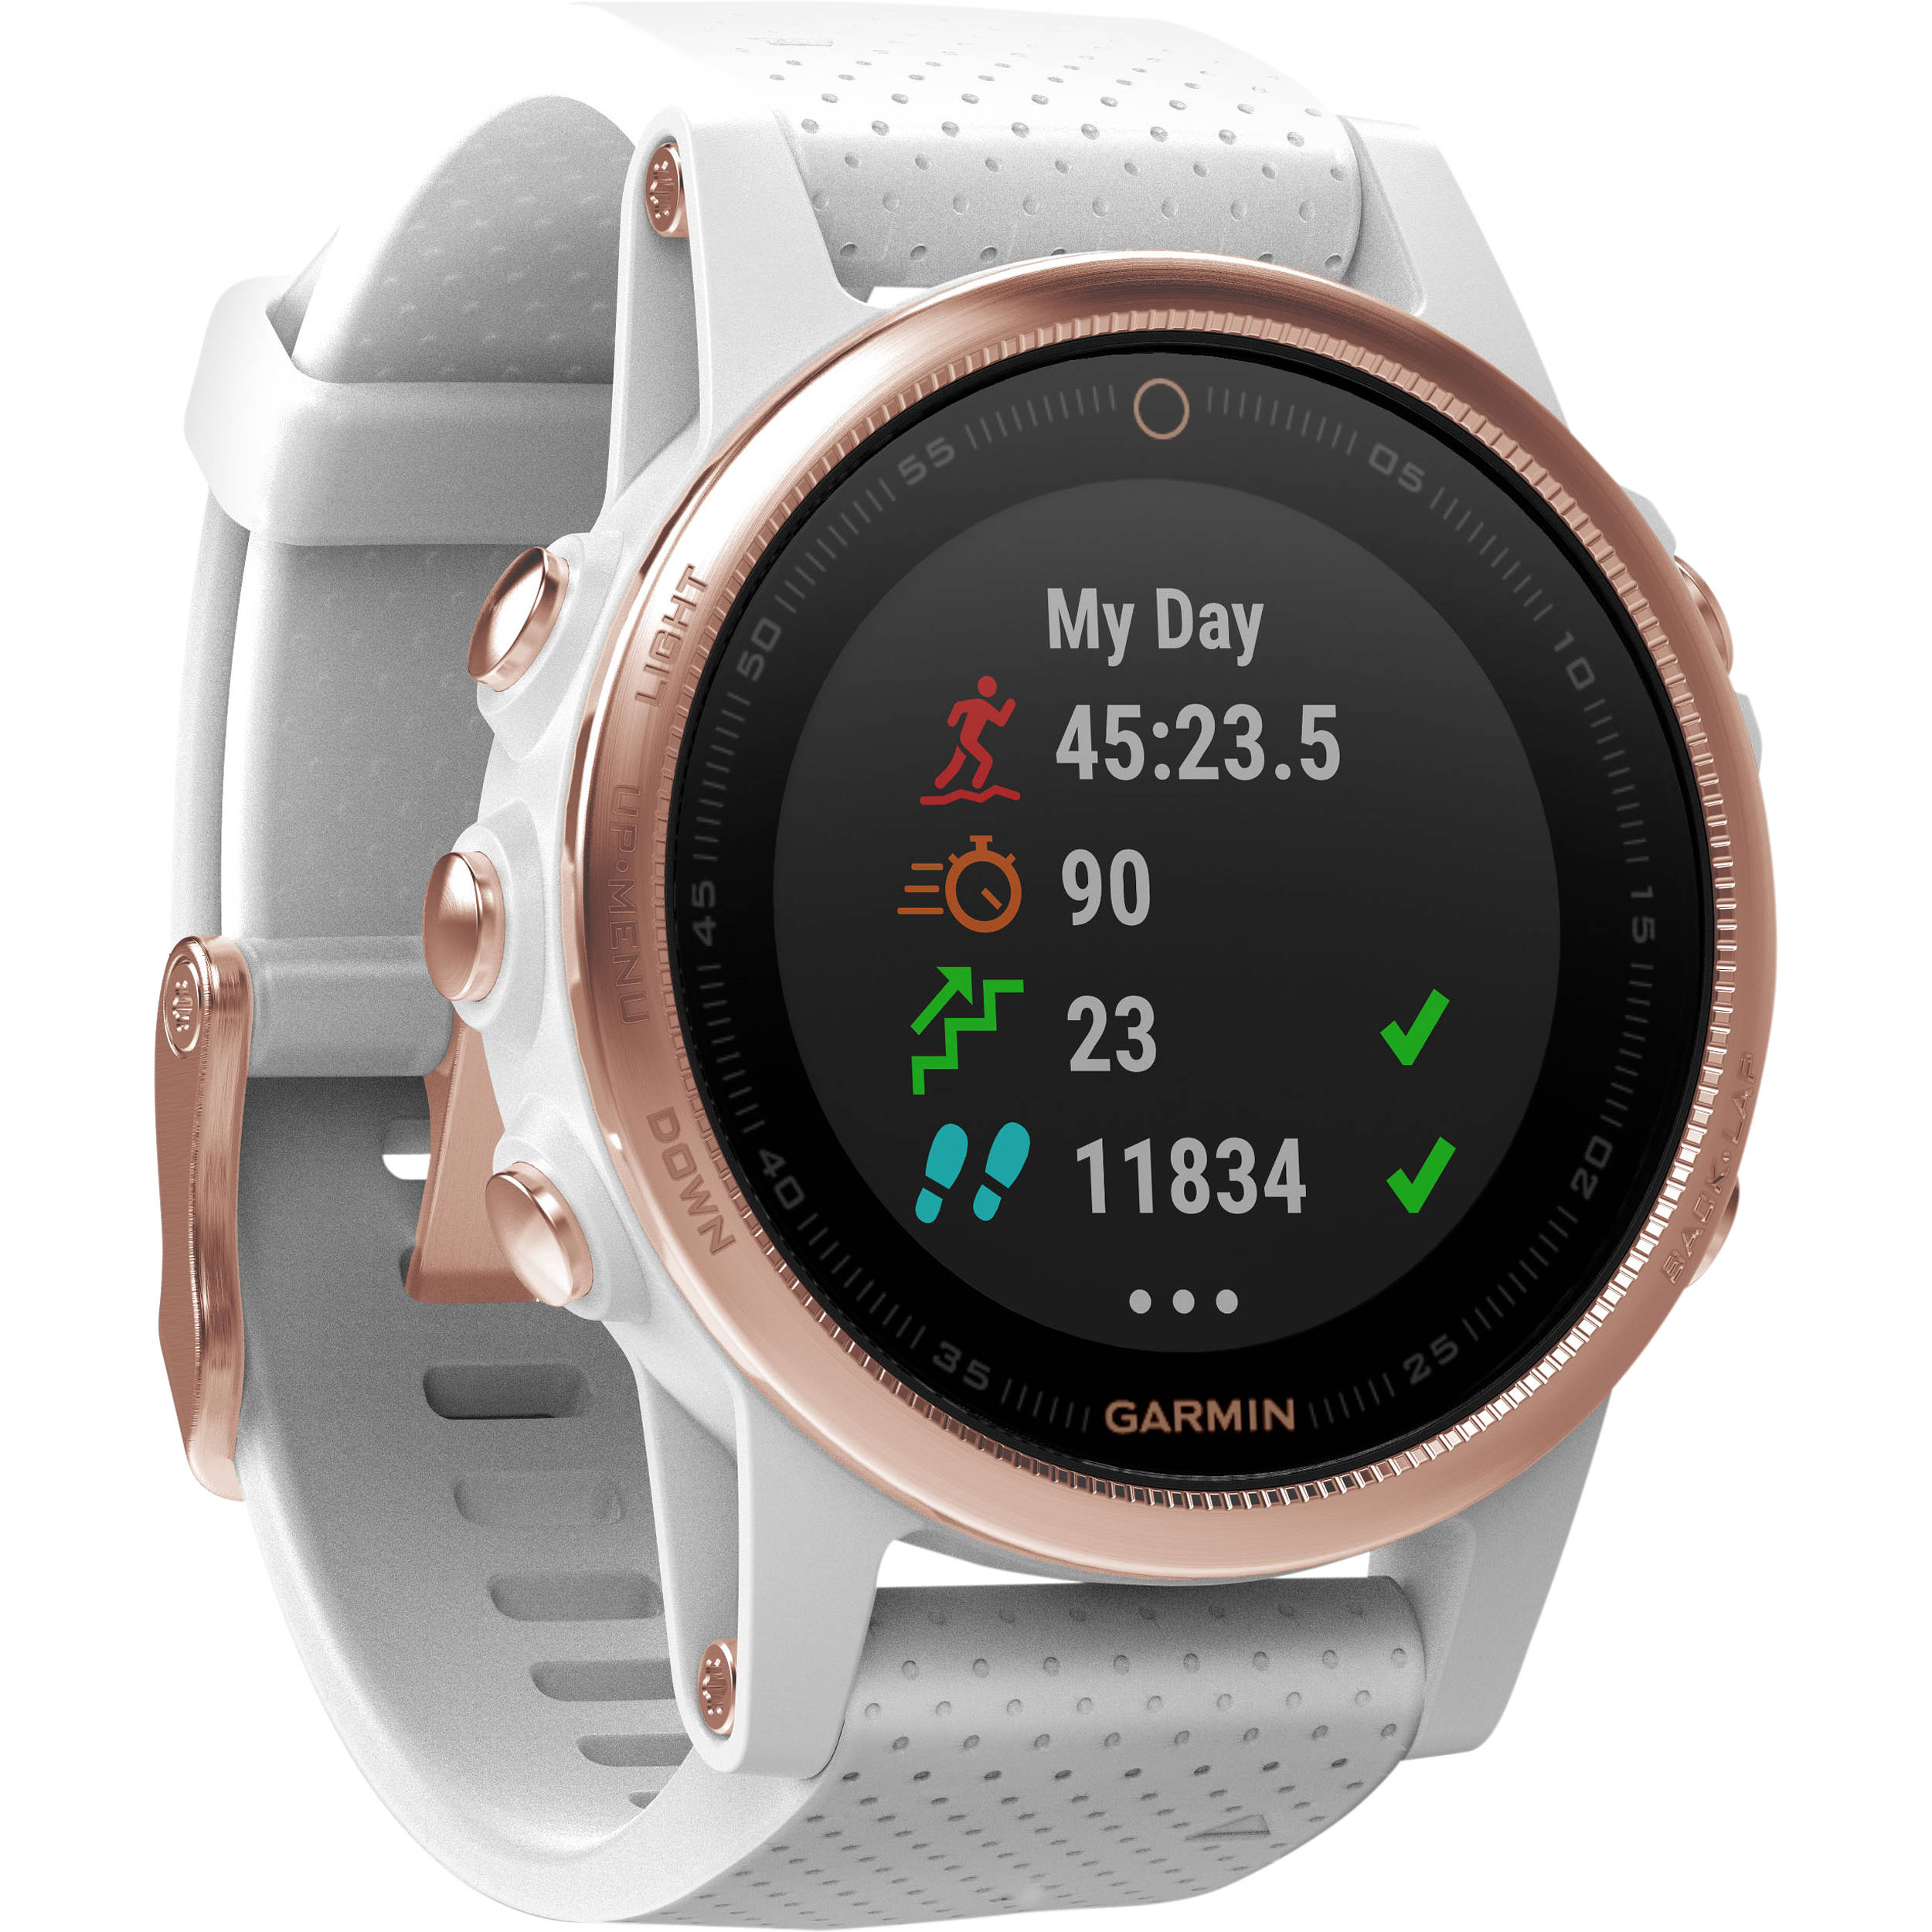 wtx watch buddy golftech watches golf com smartwatch gps